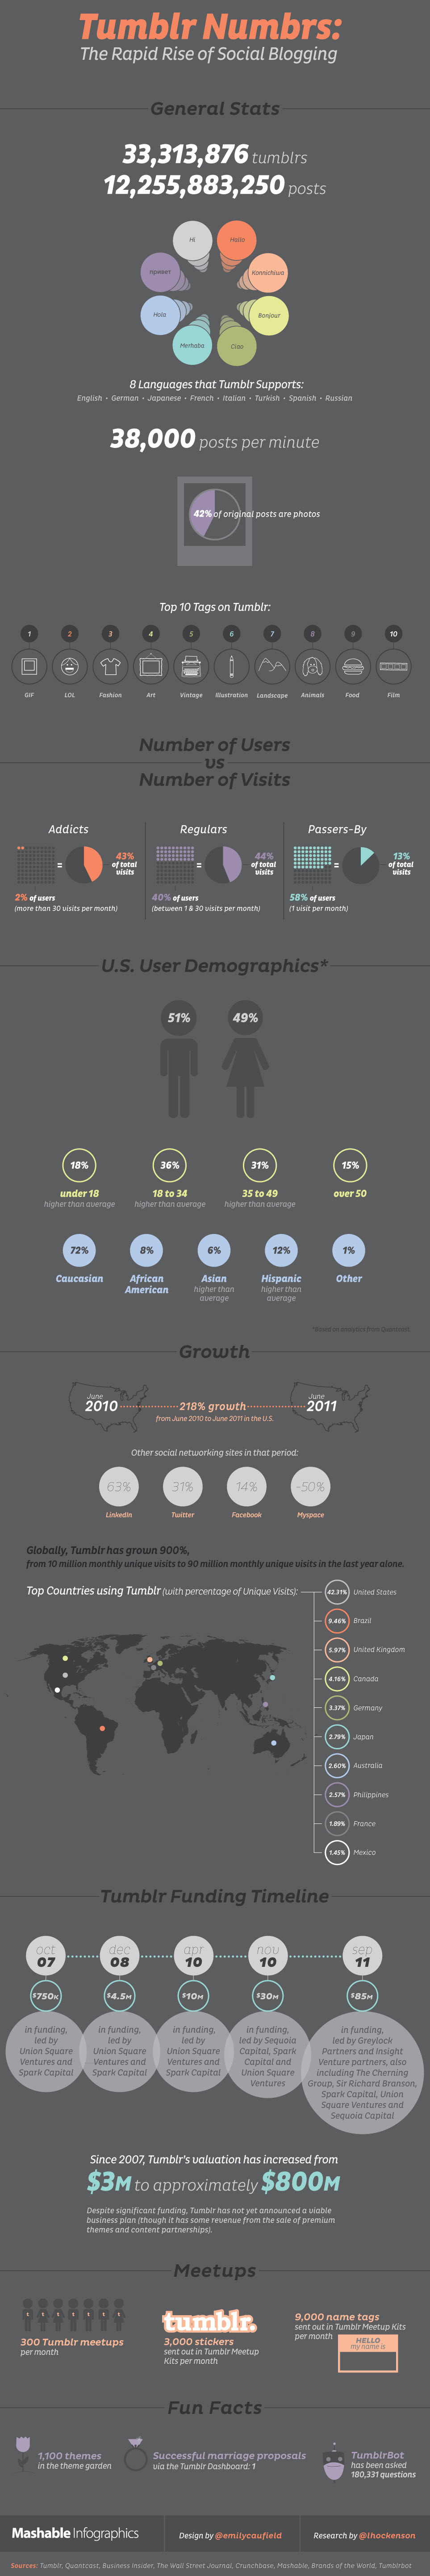 Tumblr the rapid rise of social blogging1 Social Media  What is Tumblr?